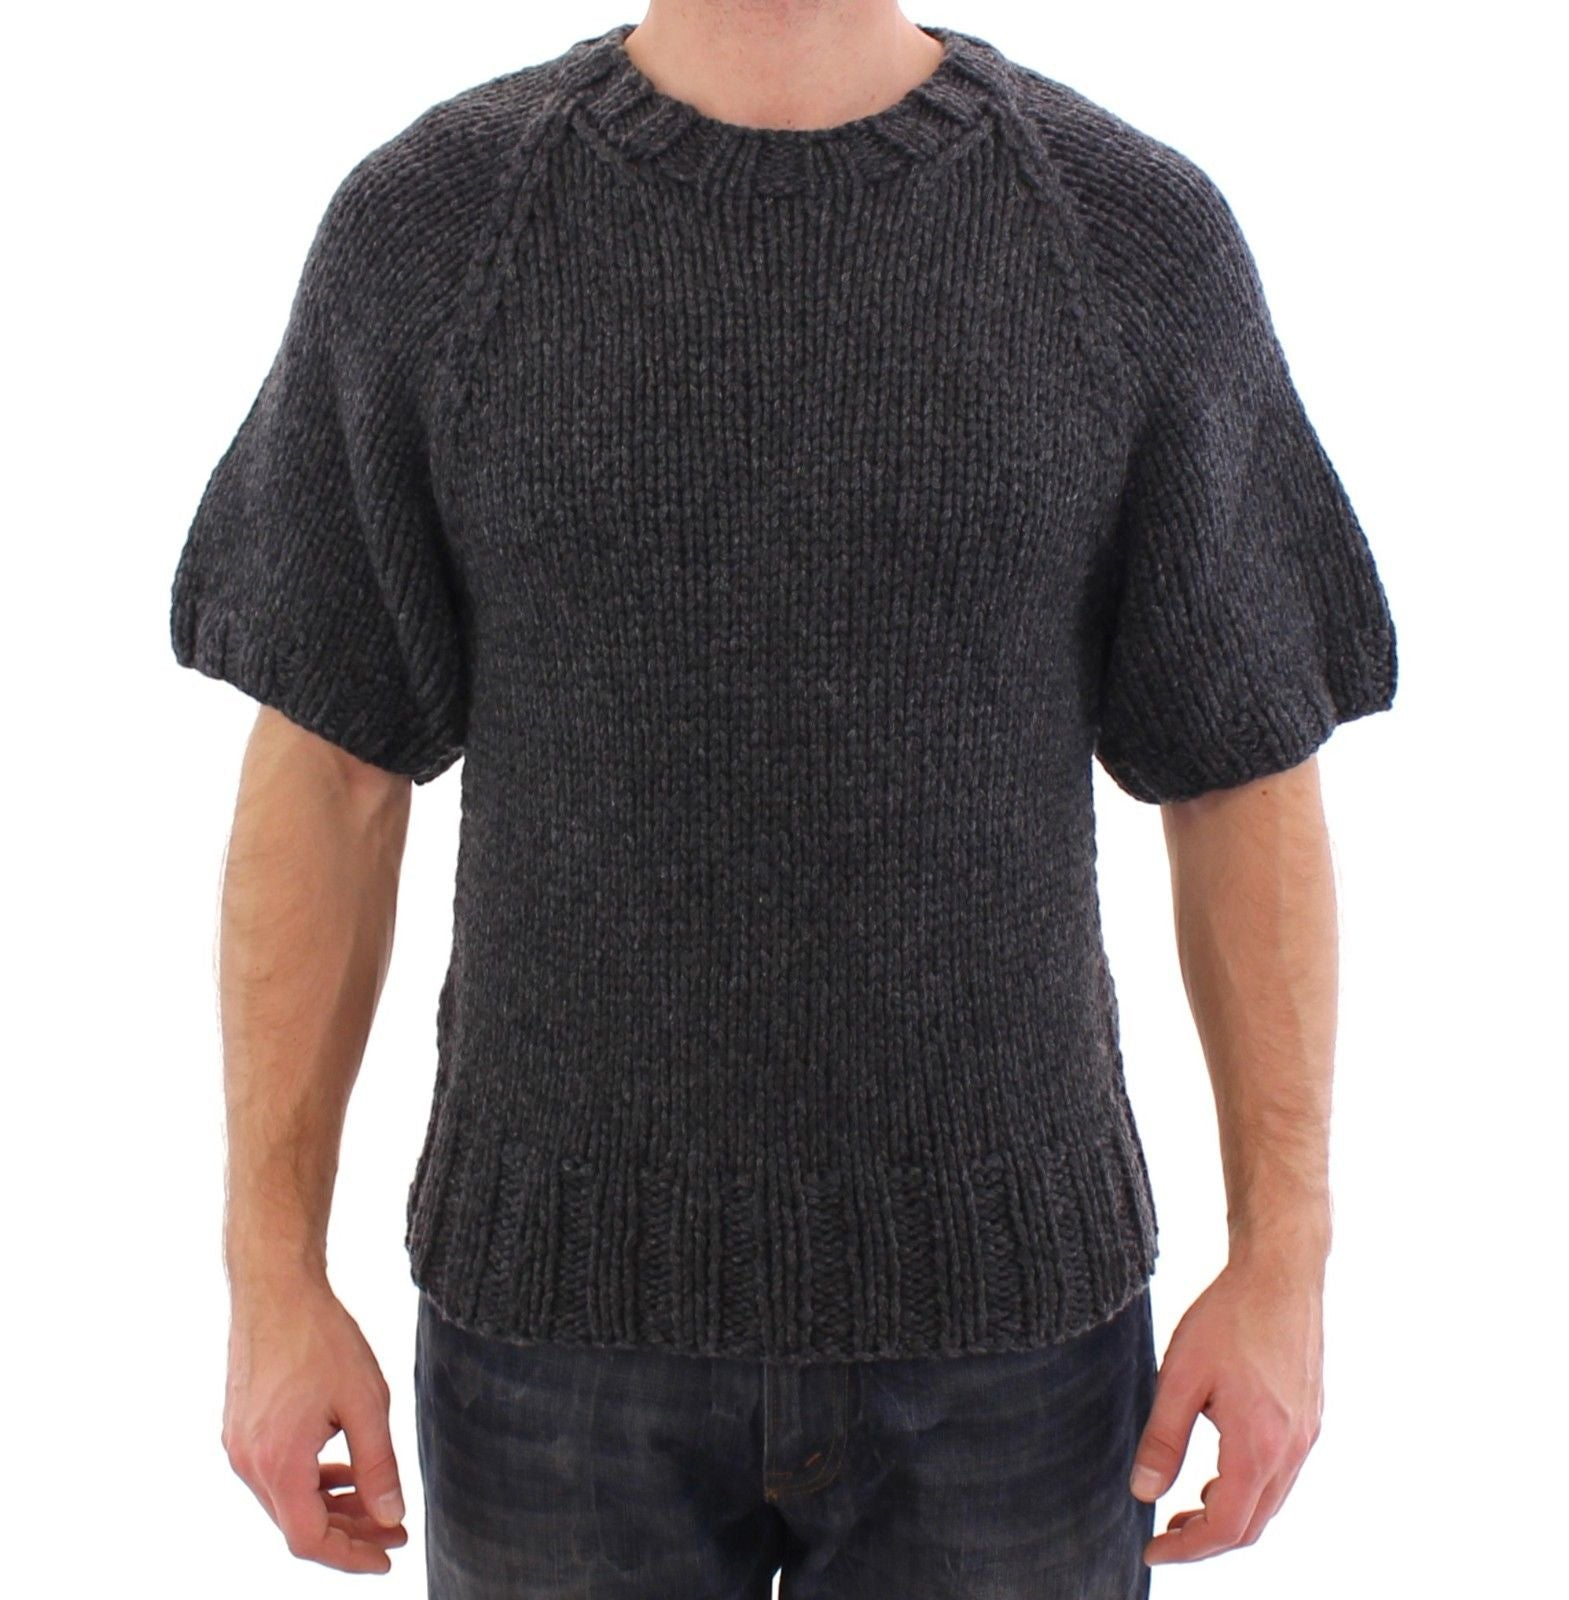 Dolce & Gabbana - Gray Cashmere Knitted Shortsleeved Sweater